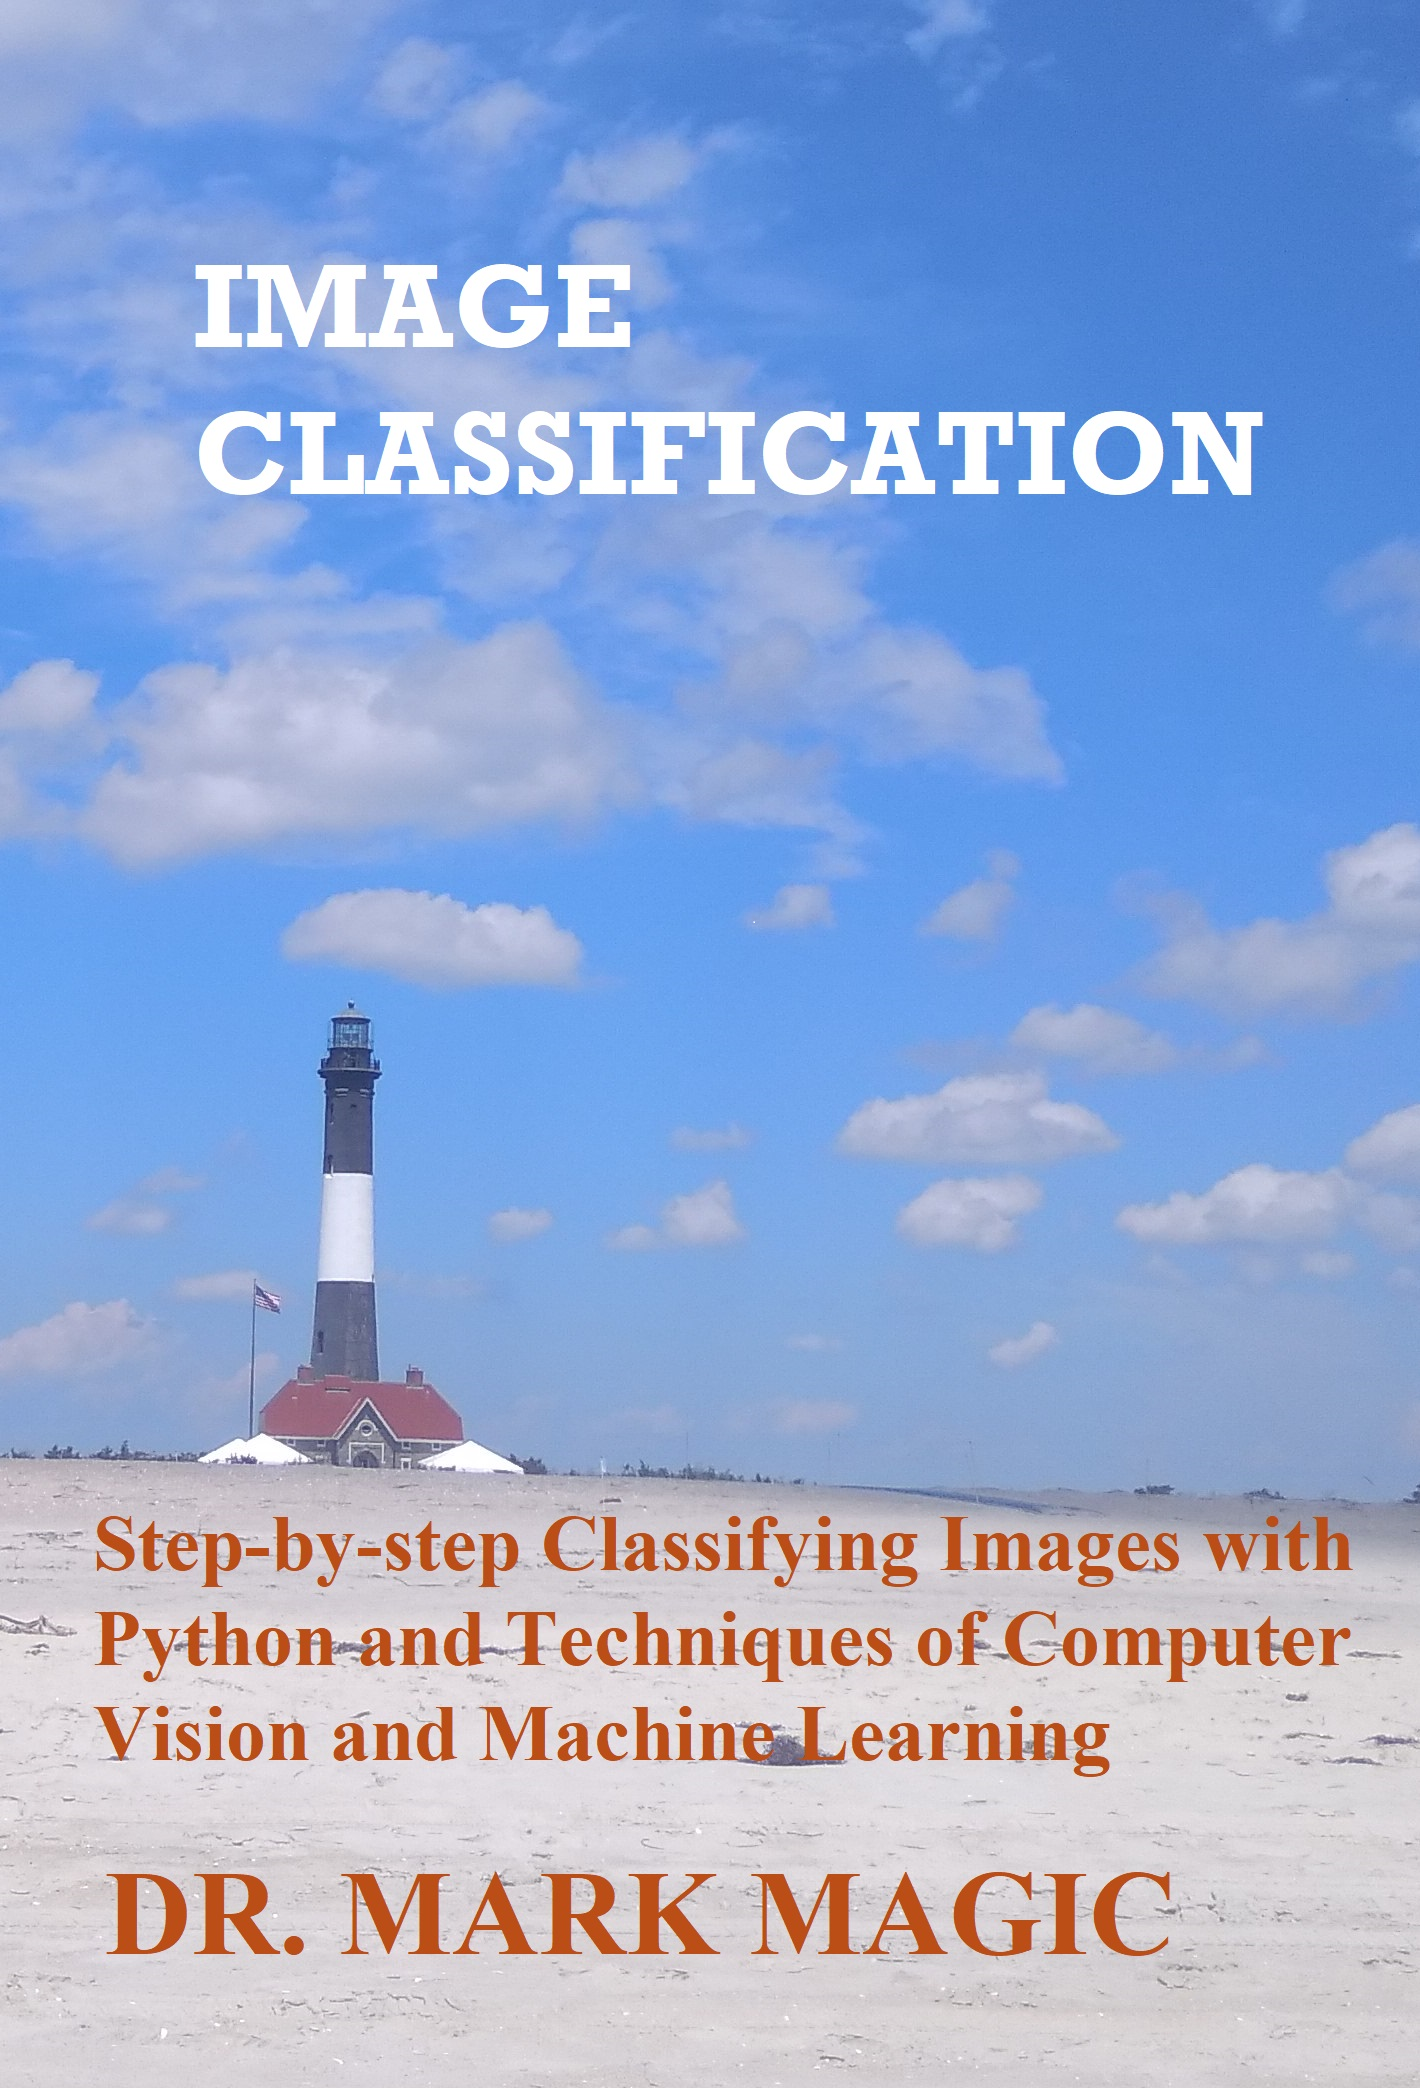 Image Classification: Step-by-step Classifying Images with Python and  Techniques of Computer Vision and Machine Learning, an Ebook by Mark Magic